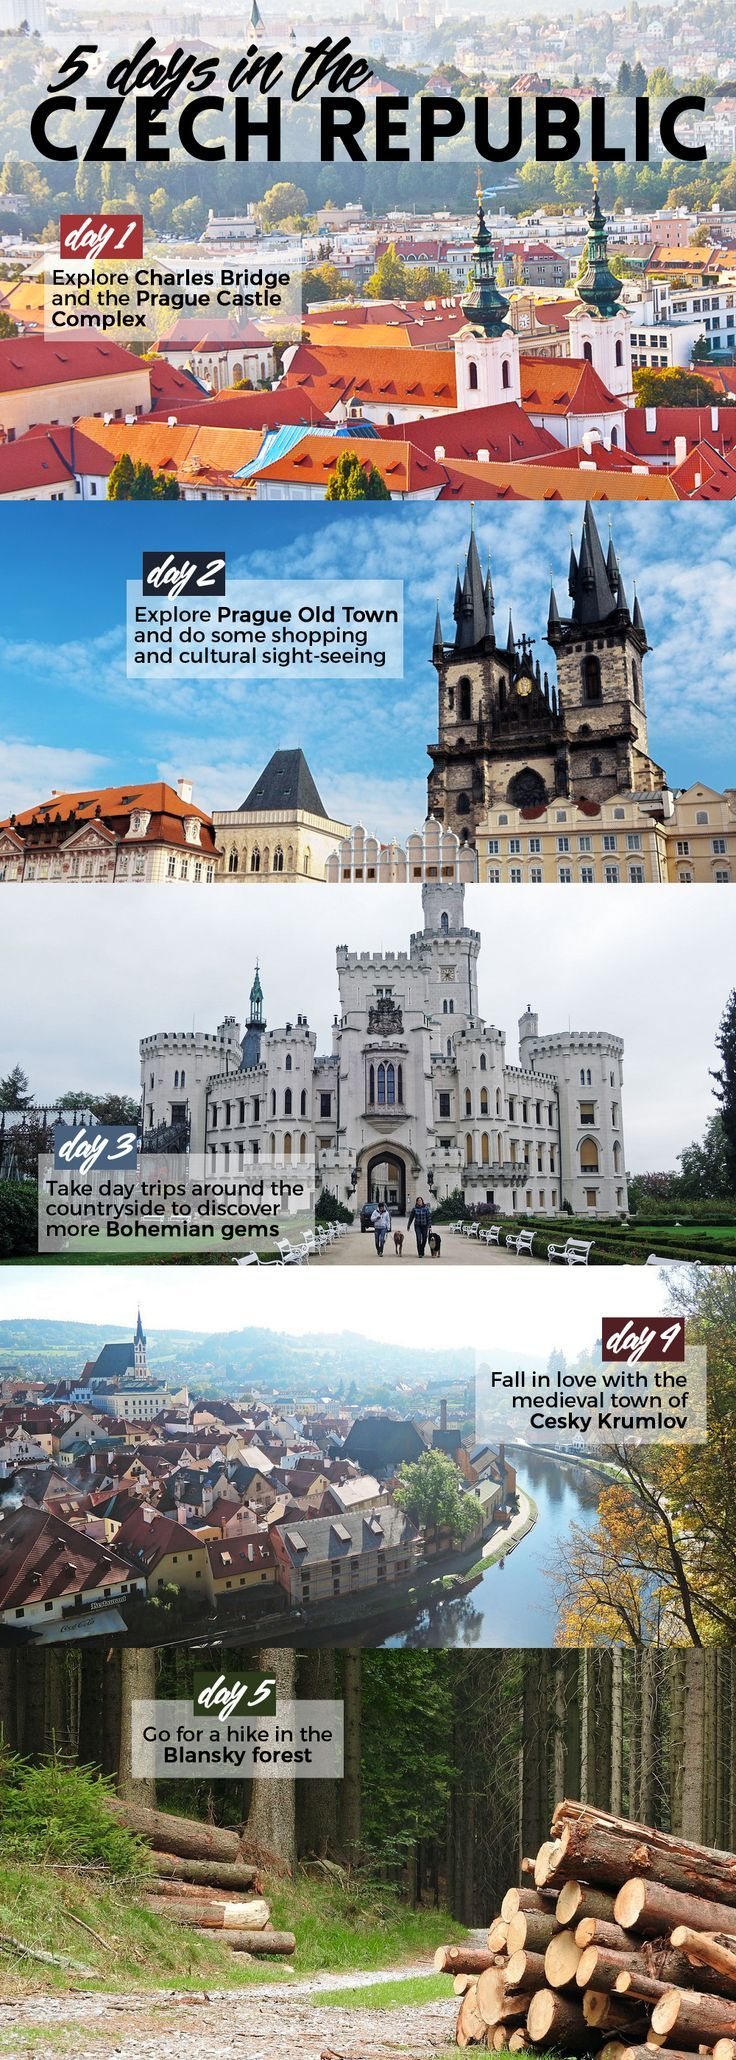 Here's what to do on your first visit to the Czech Republic: immerse in the fairytale cities of Prague and Cesky Krumlov, drive or hike around the countryside, and drink up the magic, atmosphere, and the world's greatest beer.: